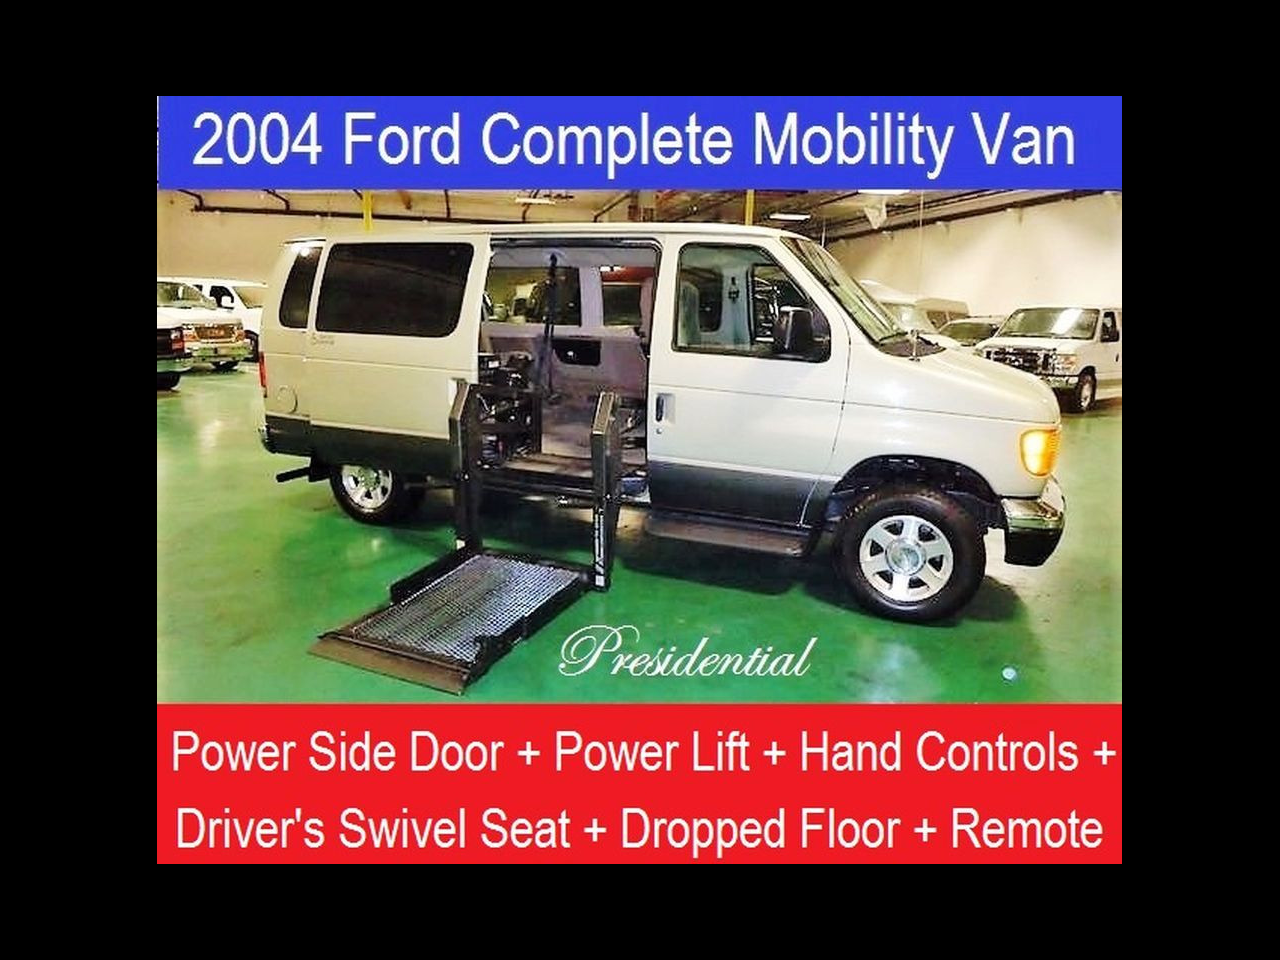 2004 Ford E150 Handicap Hand Control Swivel Seat Conversion Van